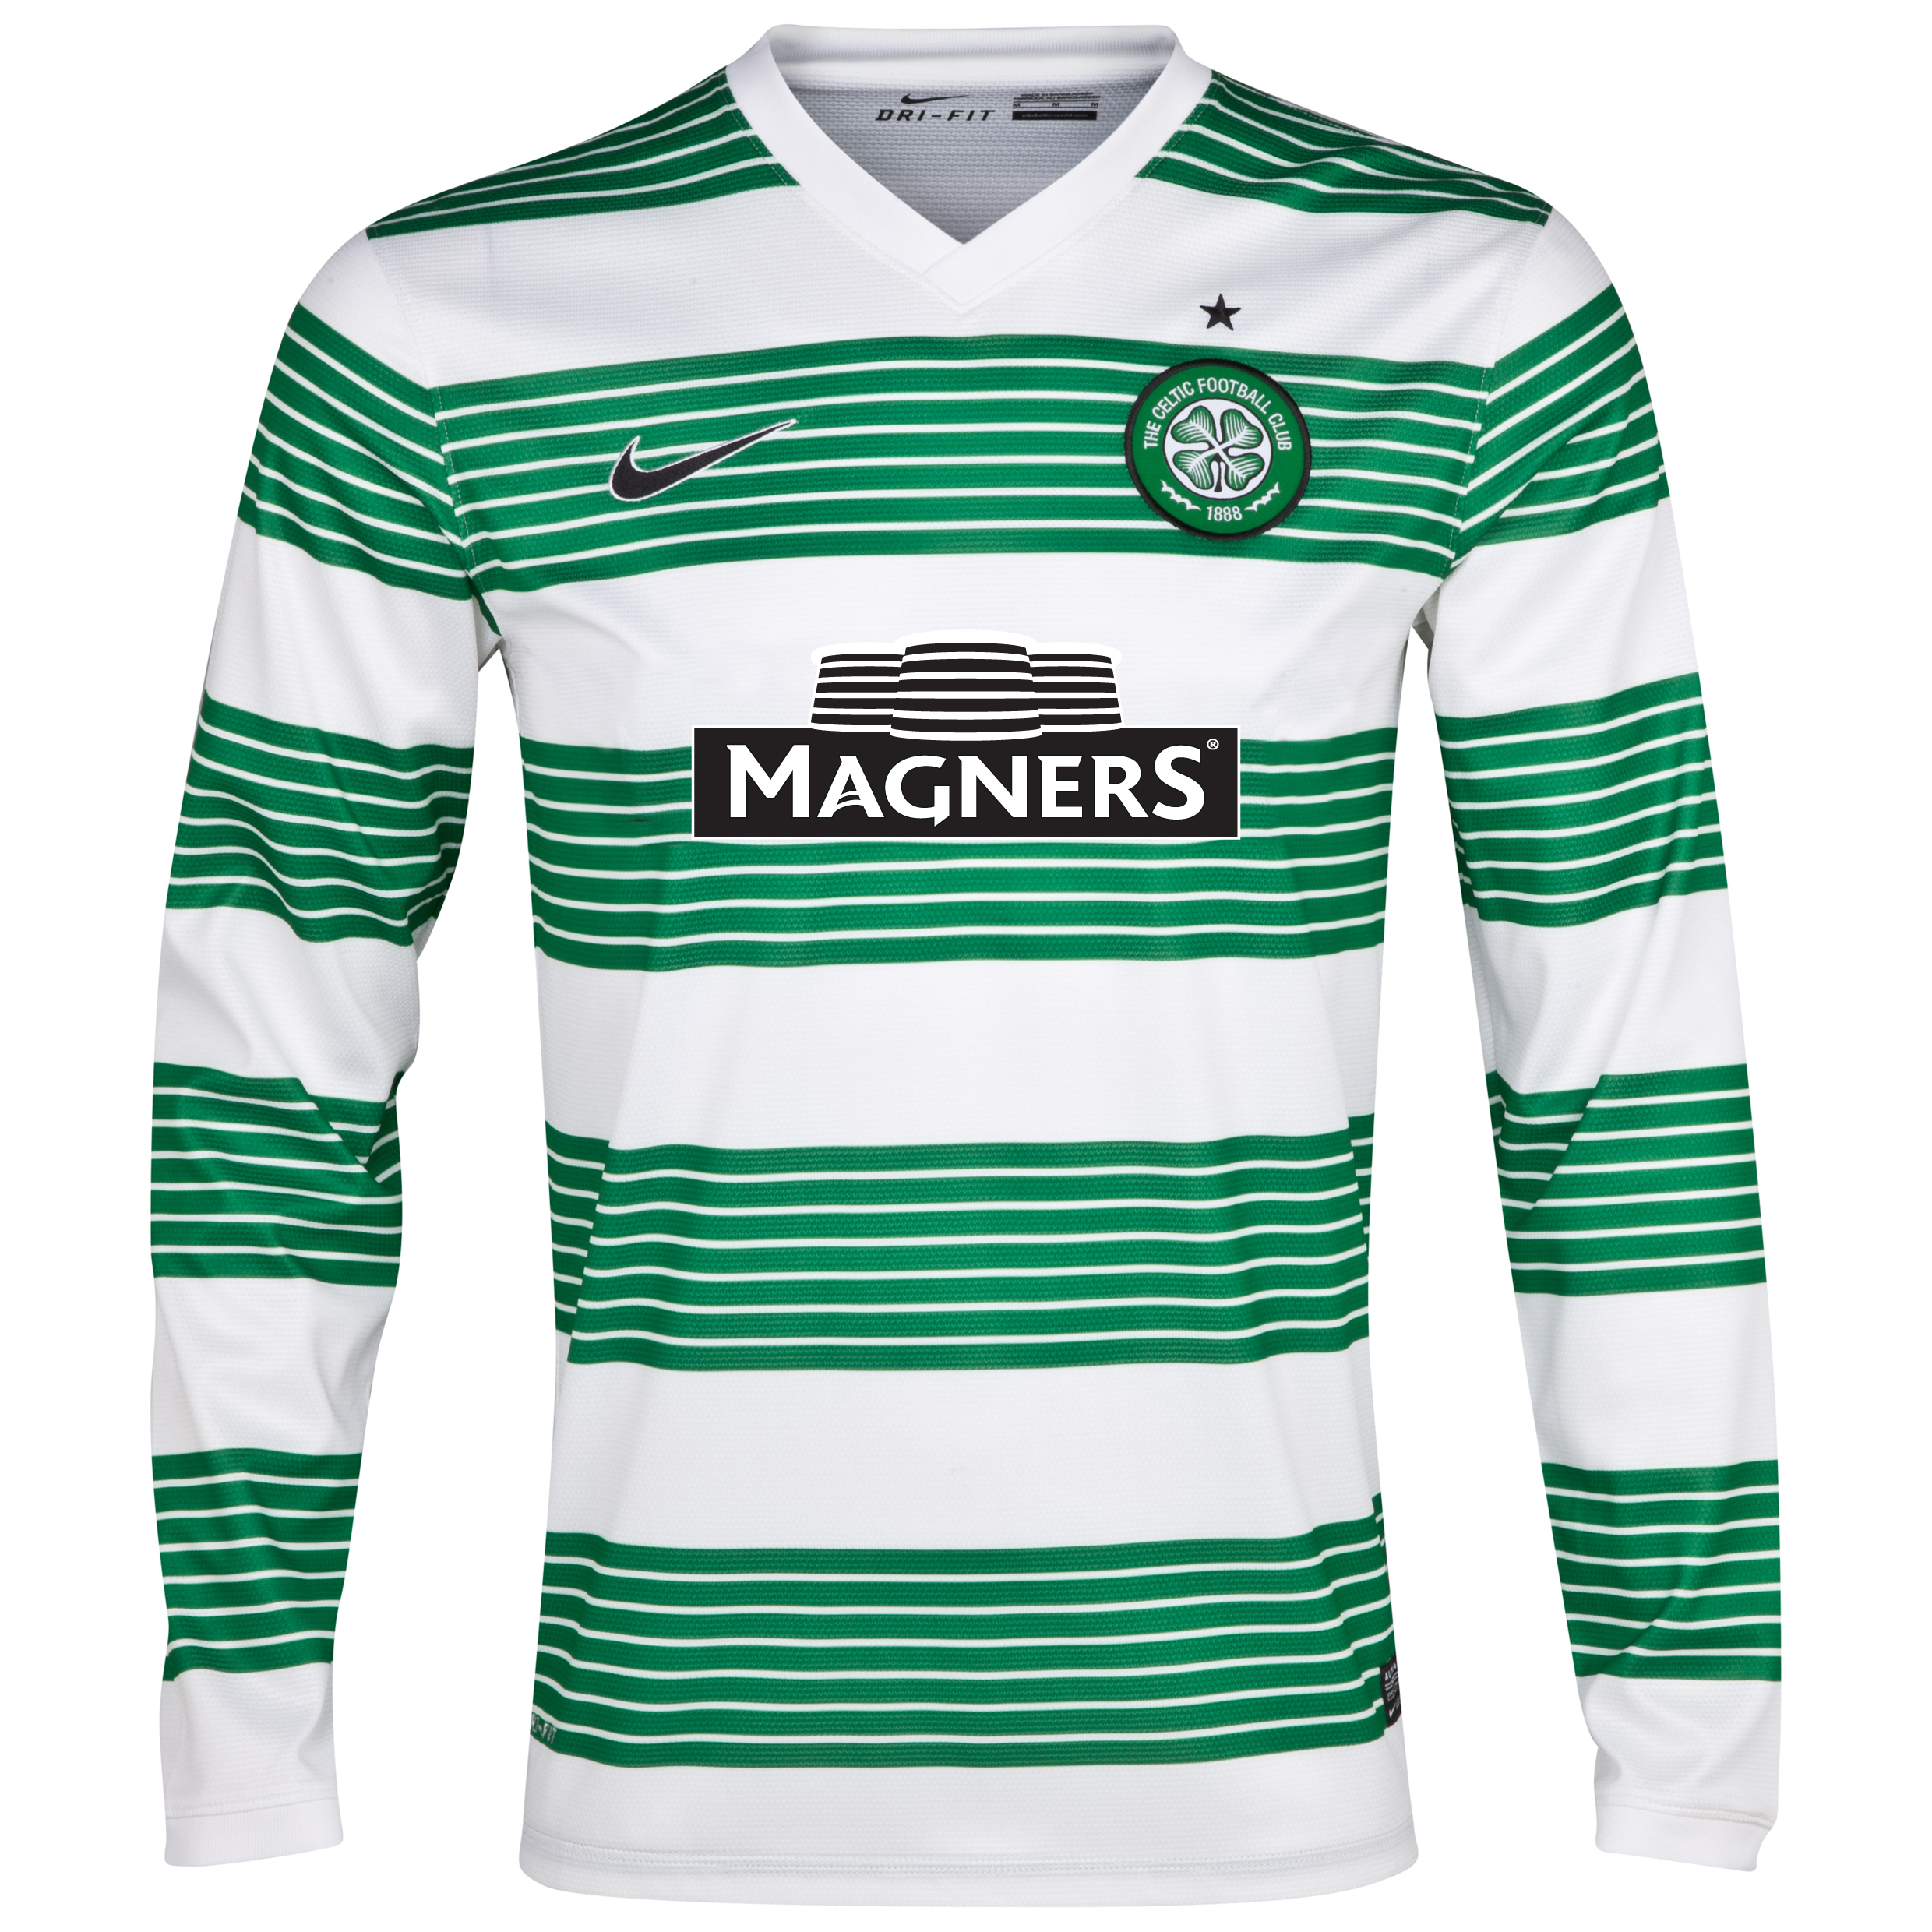 Celtic Home Shirt 2013/15 - L/S- With Sponsor